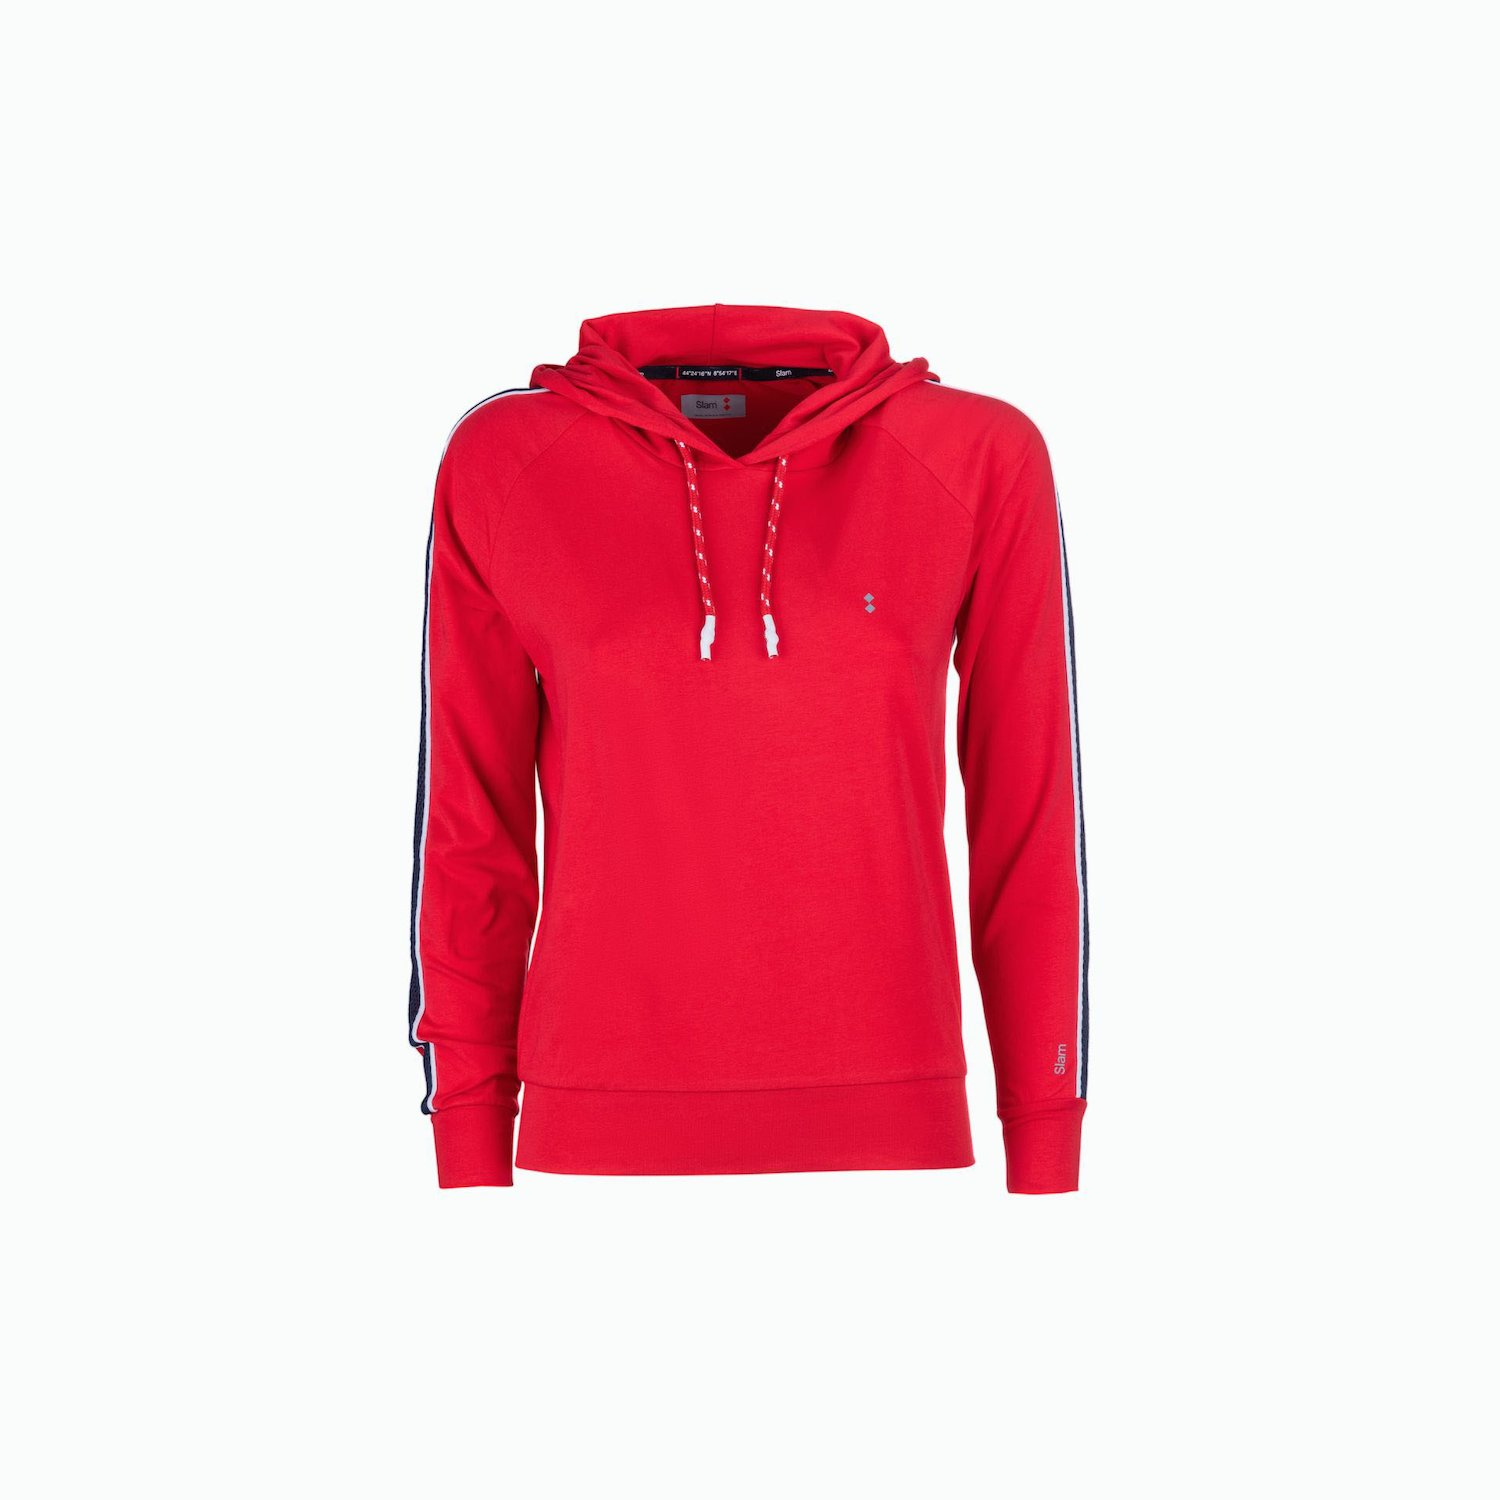 C118 Sweatshirt - Slam Red